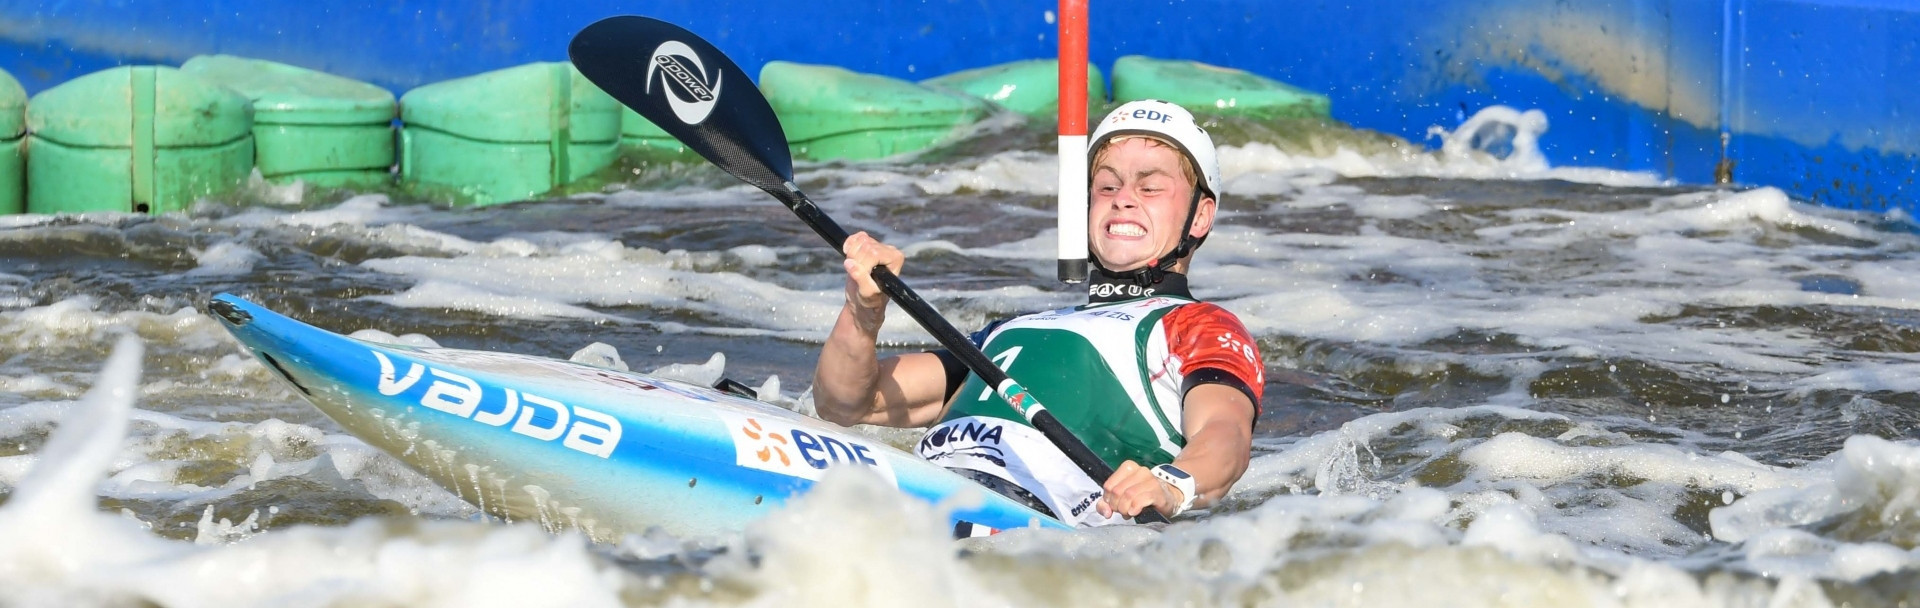 France's Delassus impresses to win junior K1 at ICF Junior and Under-23 Canoe Slalom World Championships